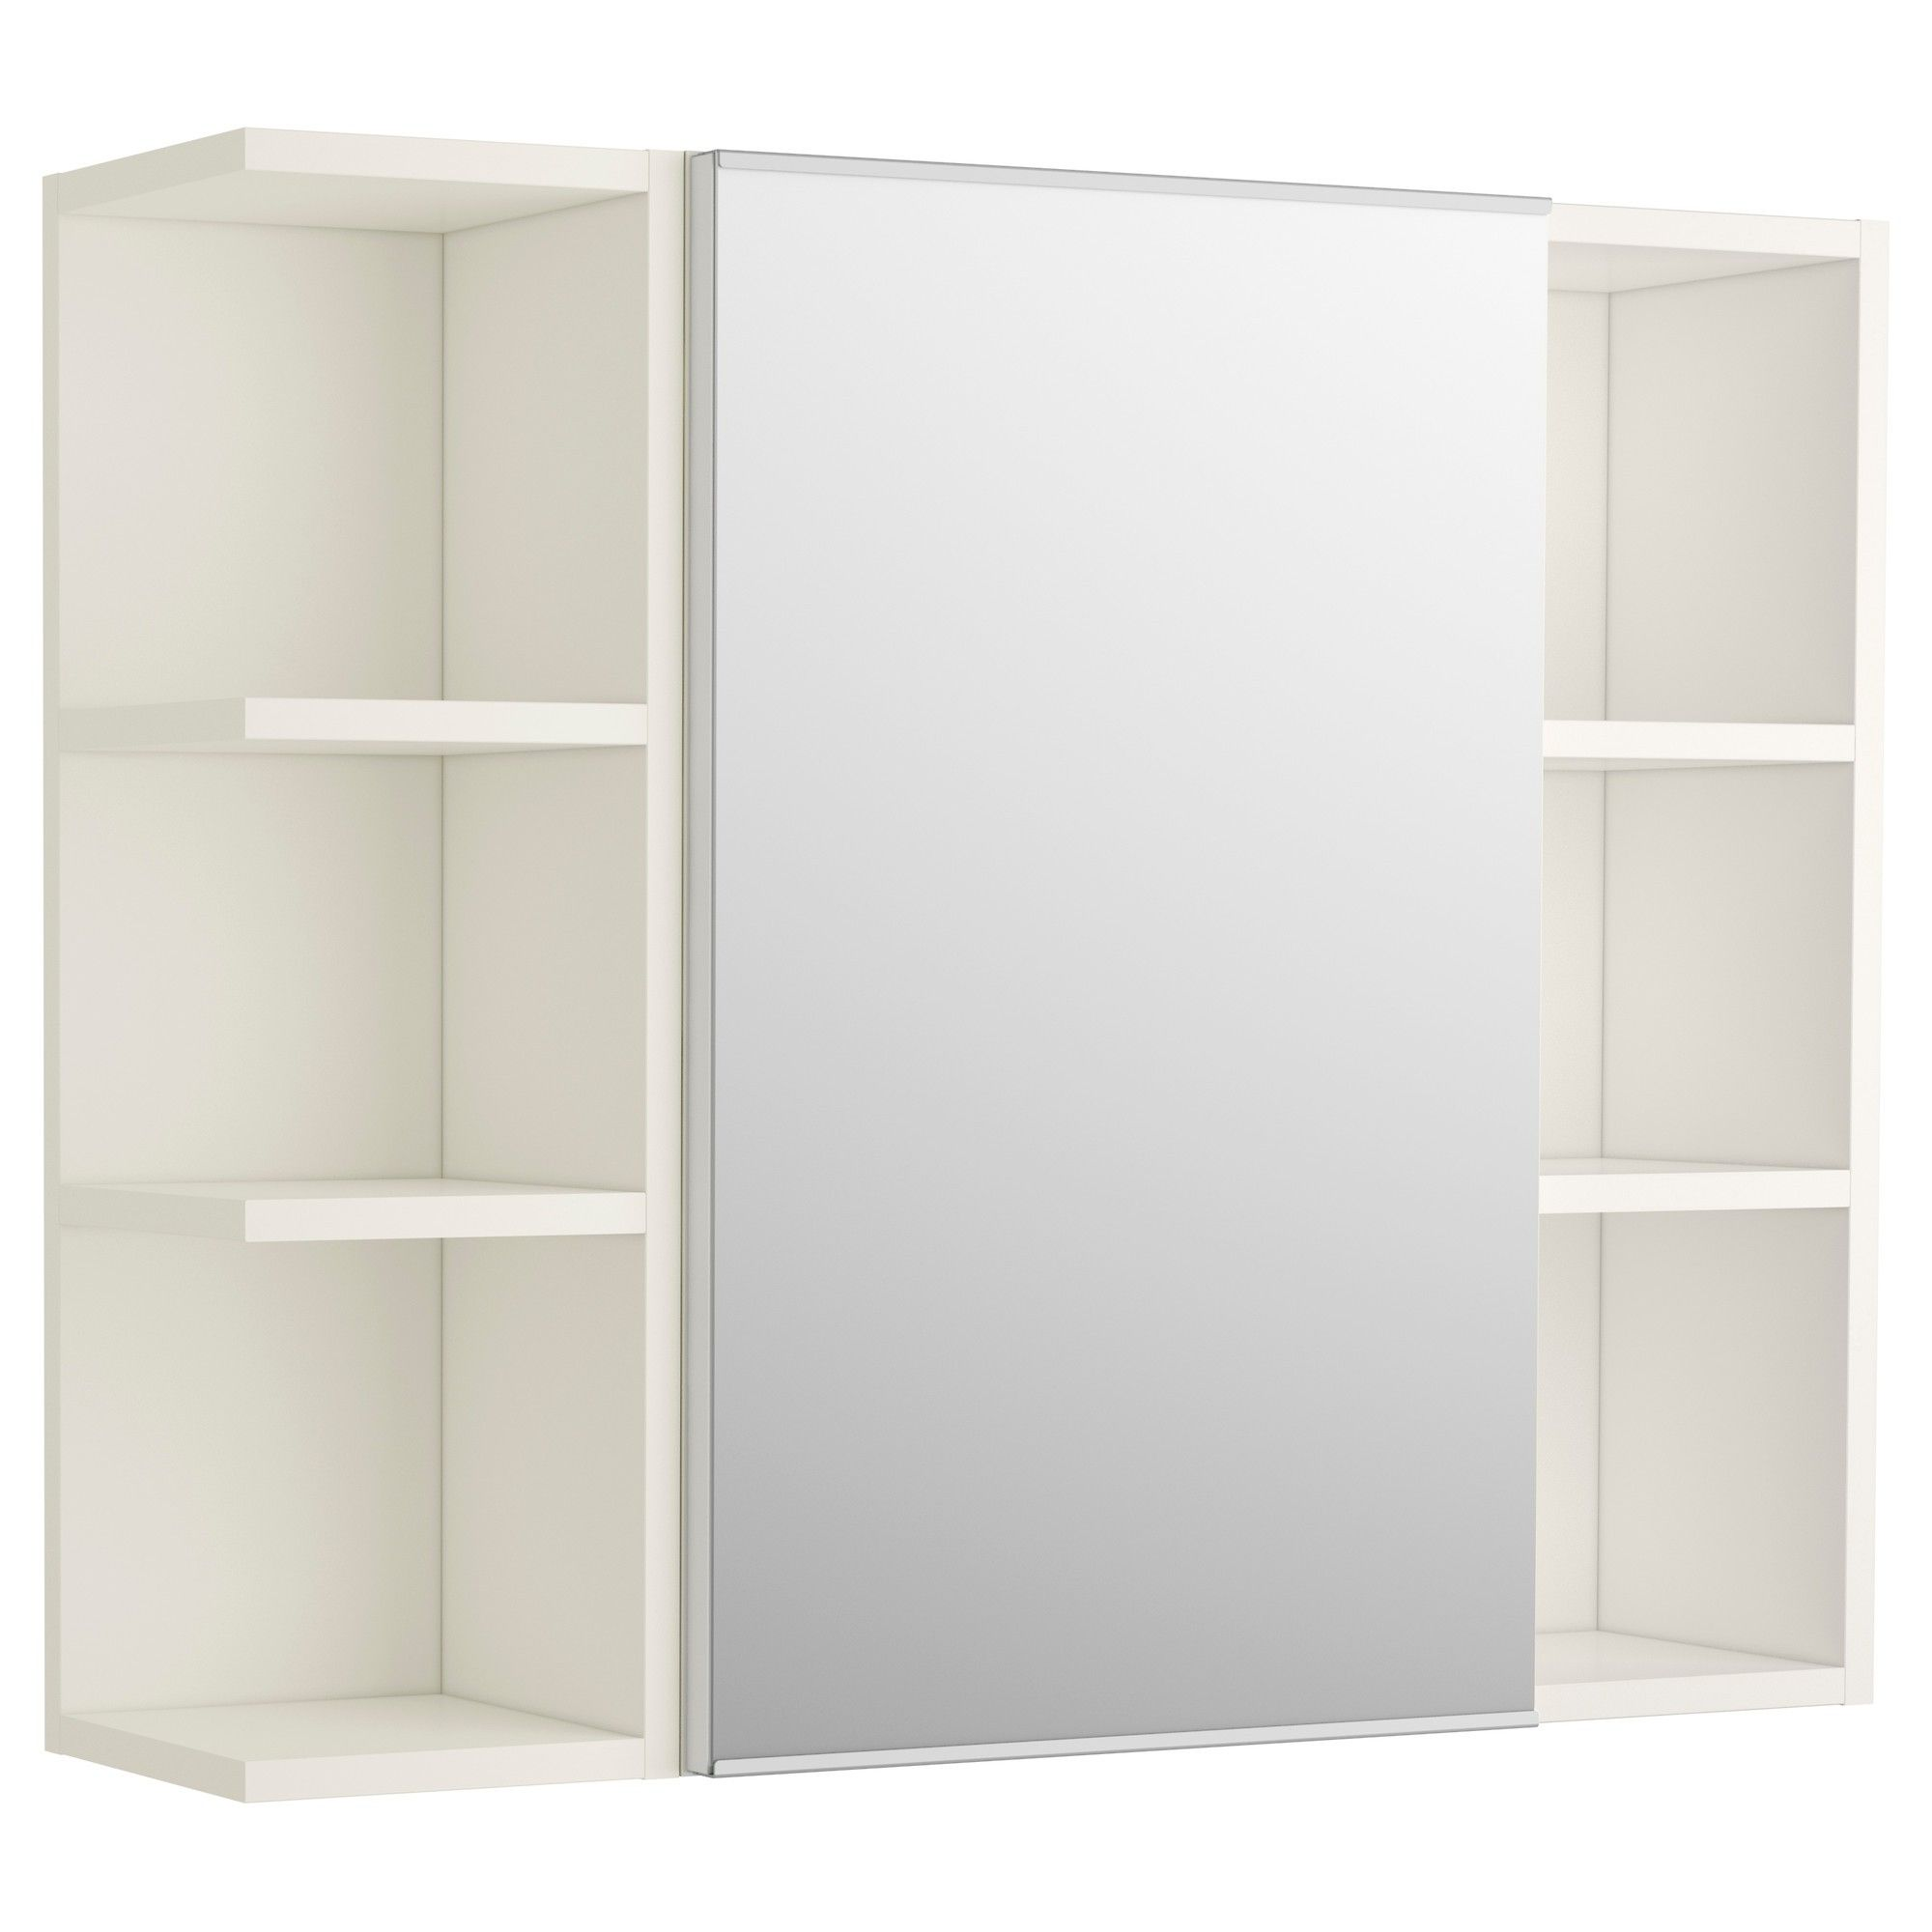 bathroom wall cabinets ikea from Bathroom Mirrored Wall Cabinets ...